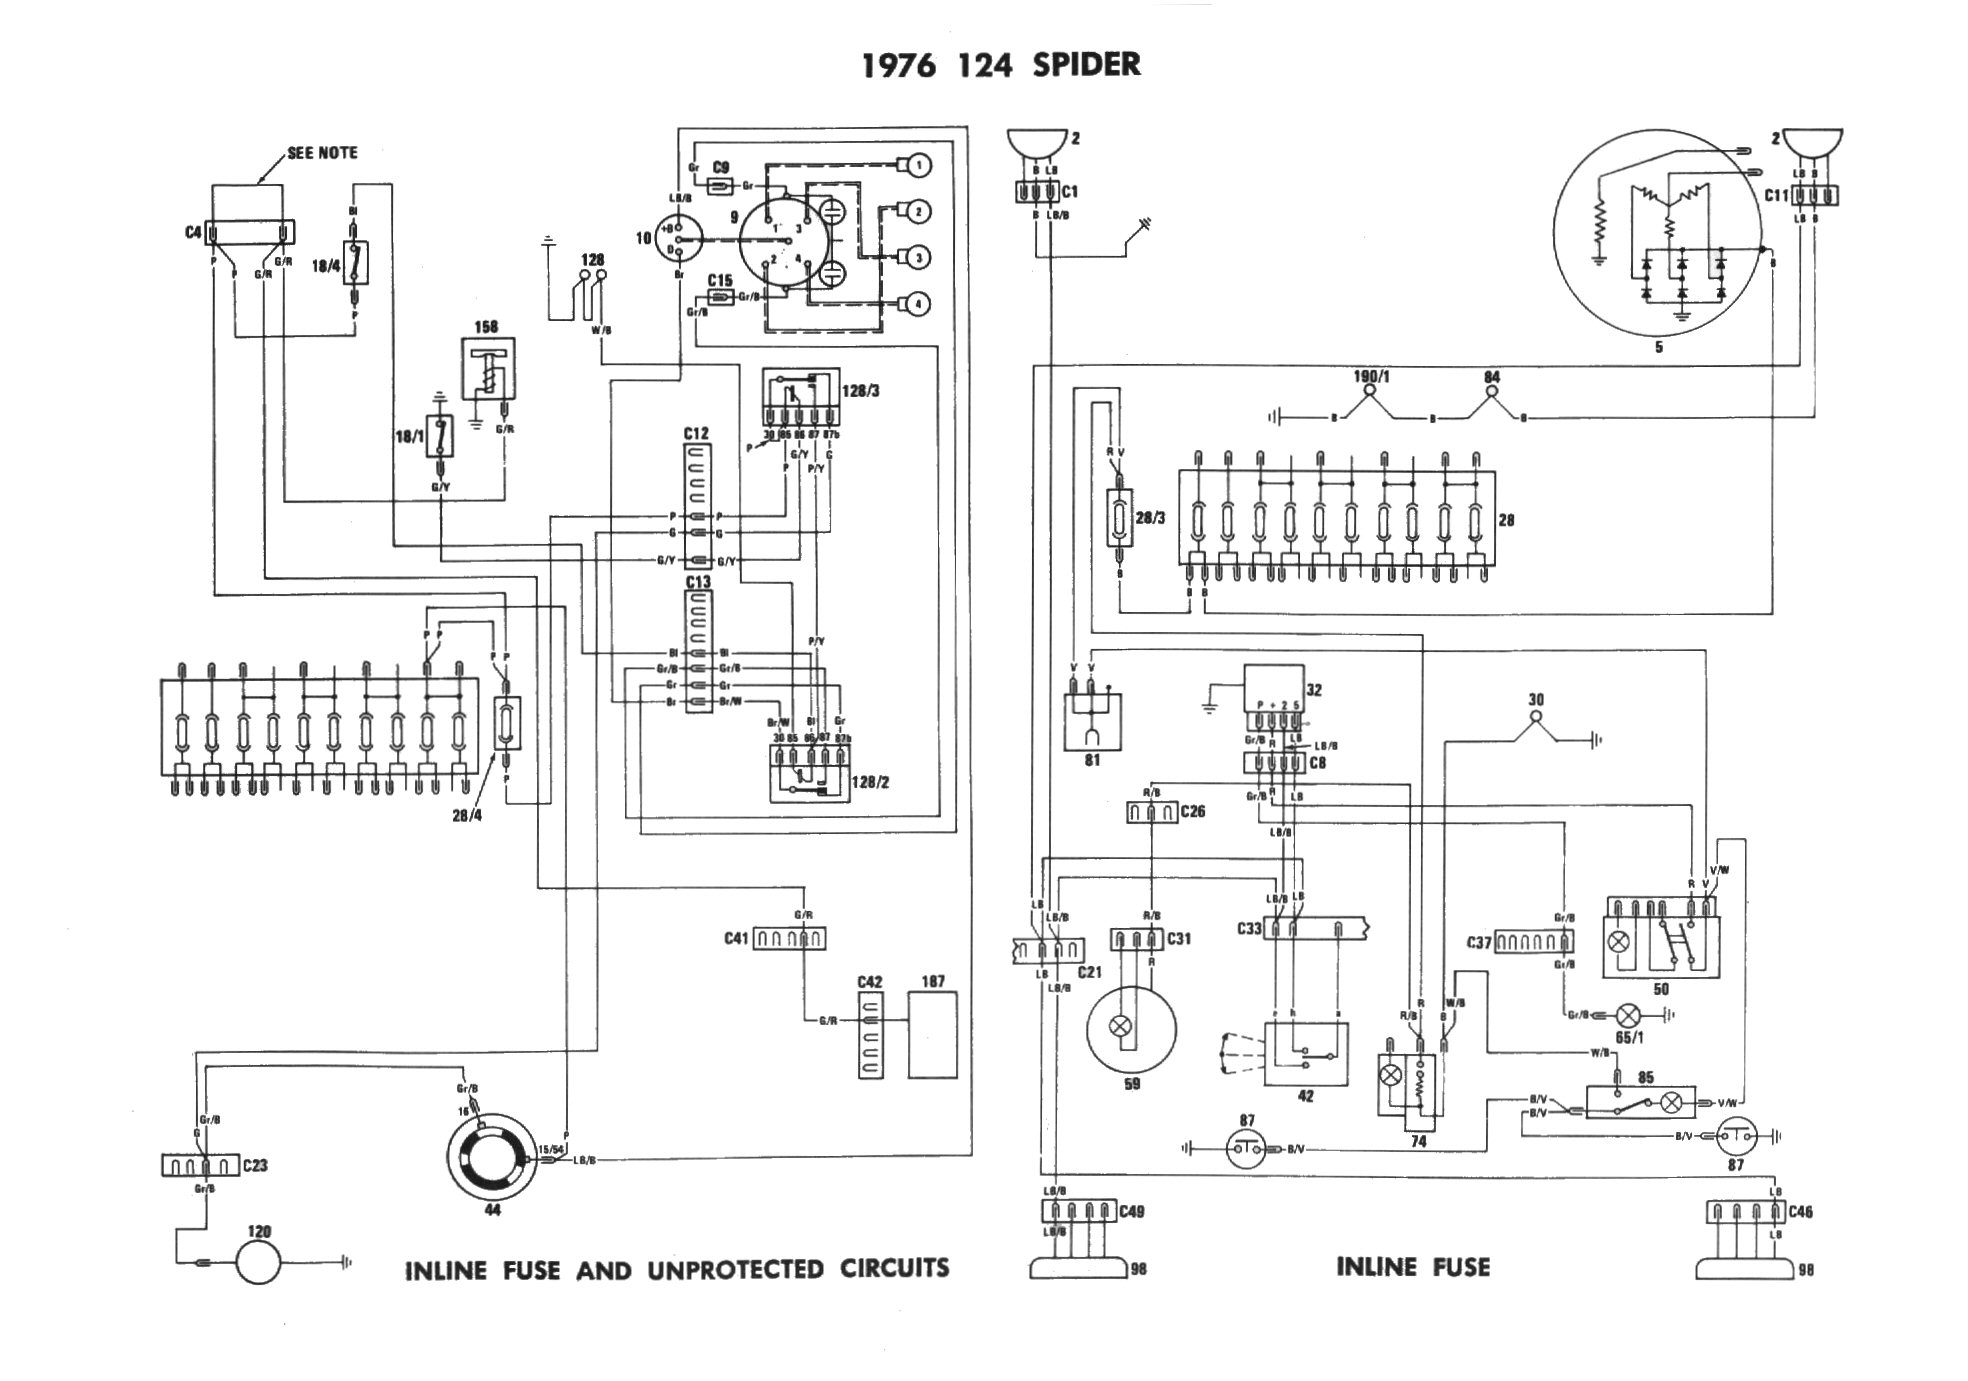 hight resolution of 1983 fiat 124 electrical schematic wiring diagram todays wiring diagram fiat 124 spider simple wiring diagram